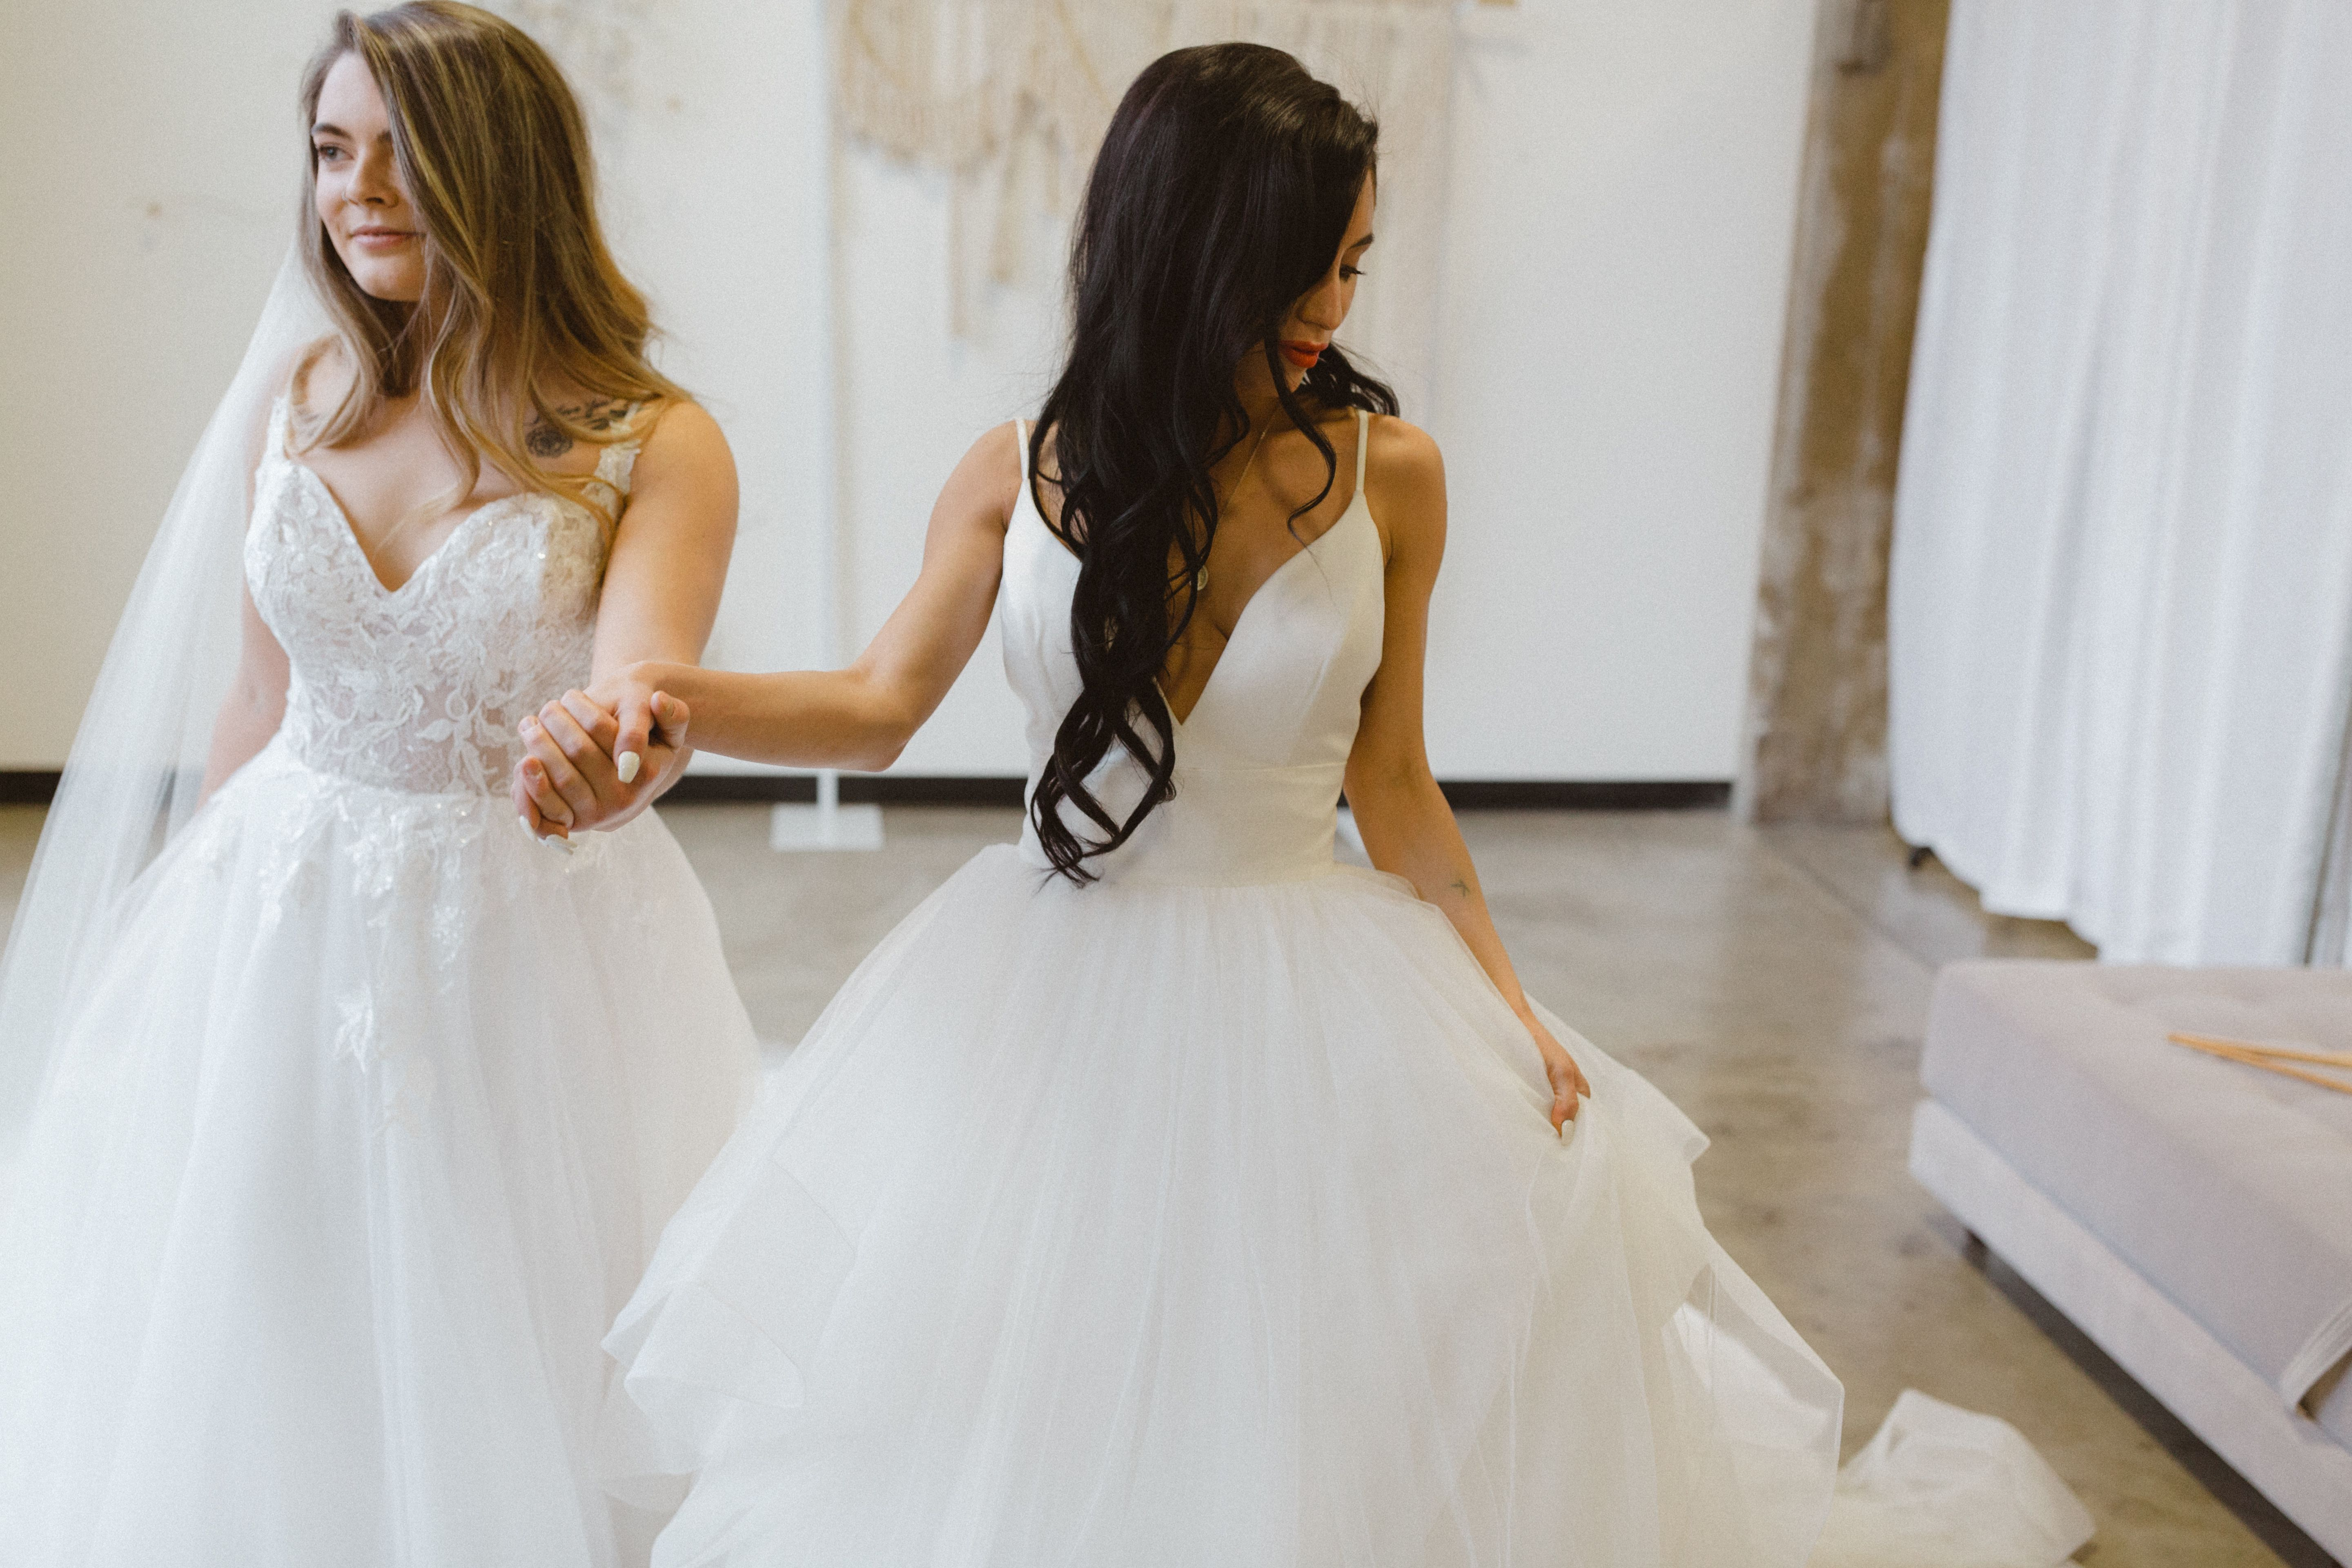 Come Shop With Your Best Friends For Your Big Day Ivory Bridal Bridal Gowns Bridal